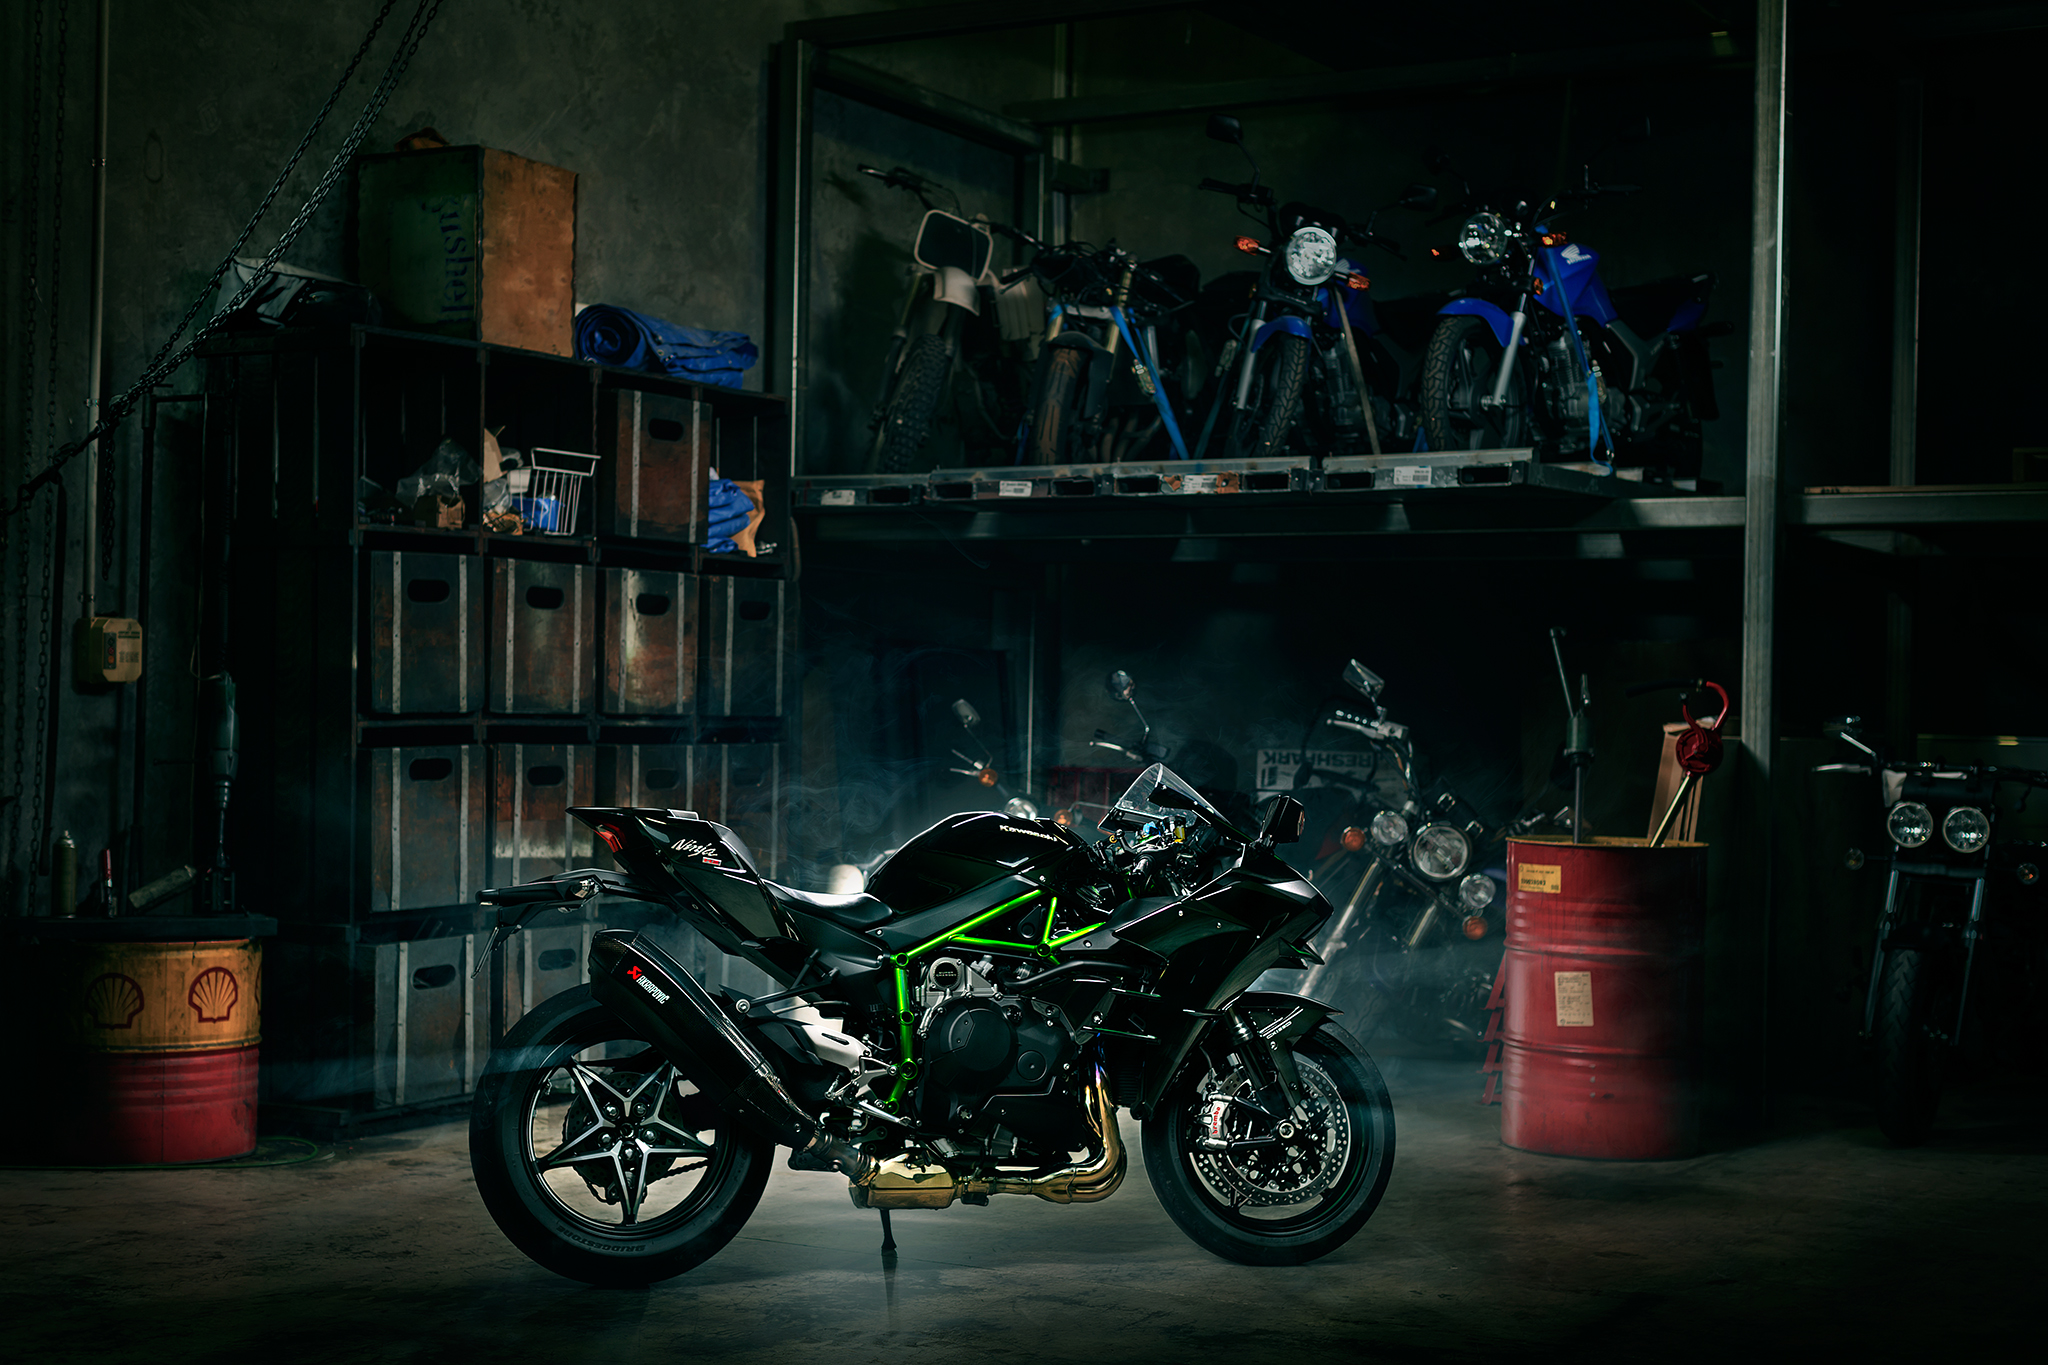 H2 PHOTOSHOOT IN OUR VERY OWN WORKSHOP - PHOTO THANKS TO SHAUN MALUGA PHOTOGRAPHY